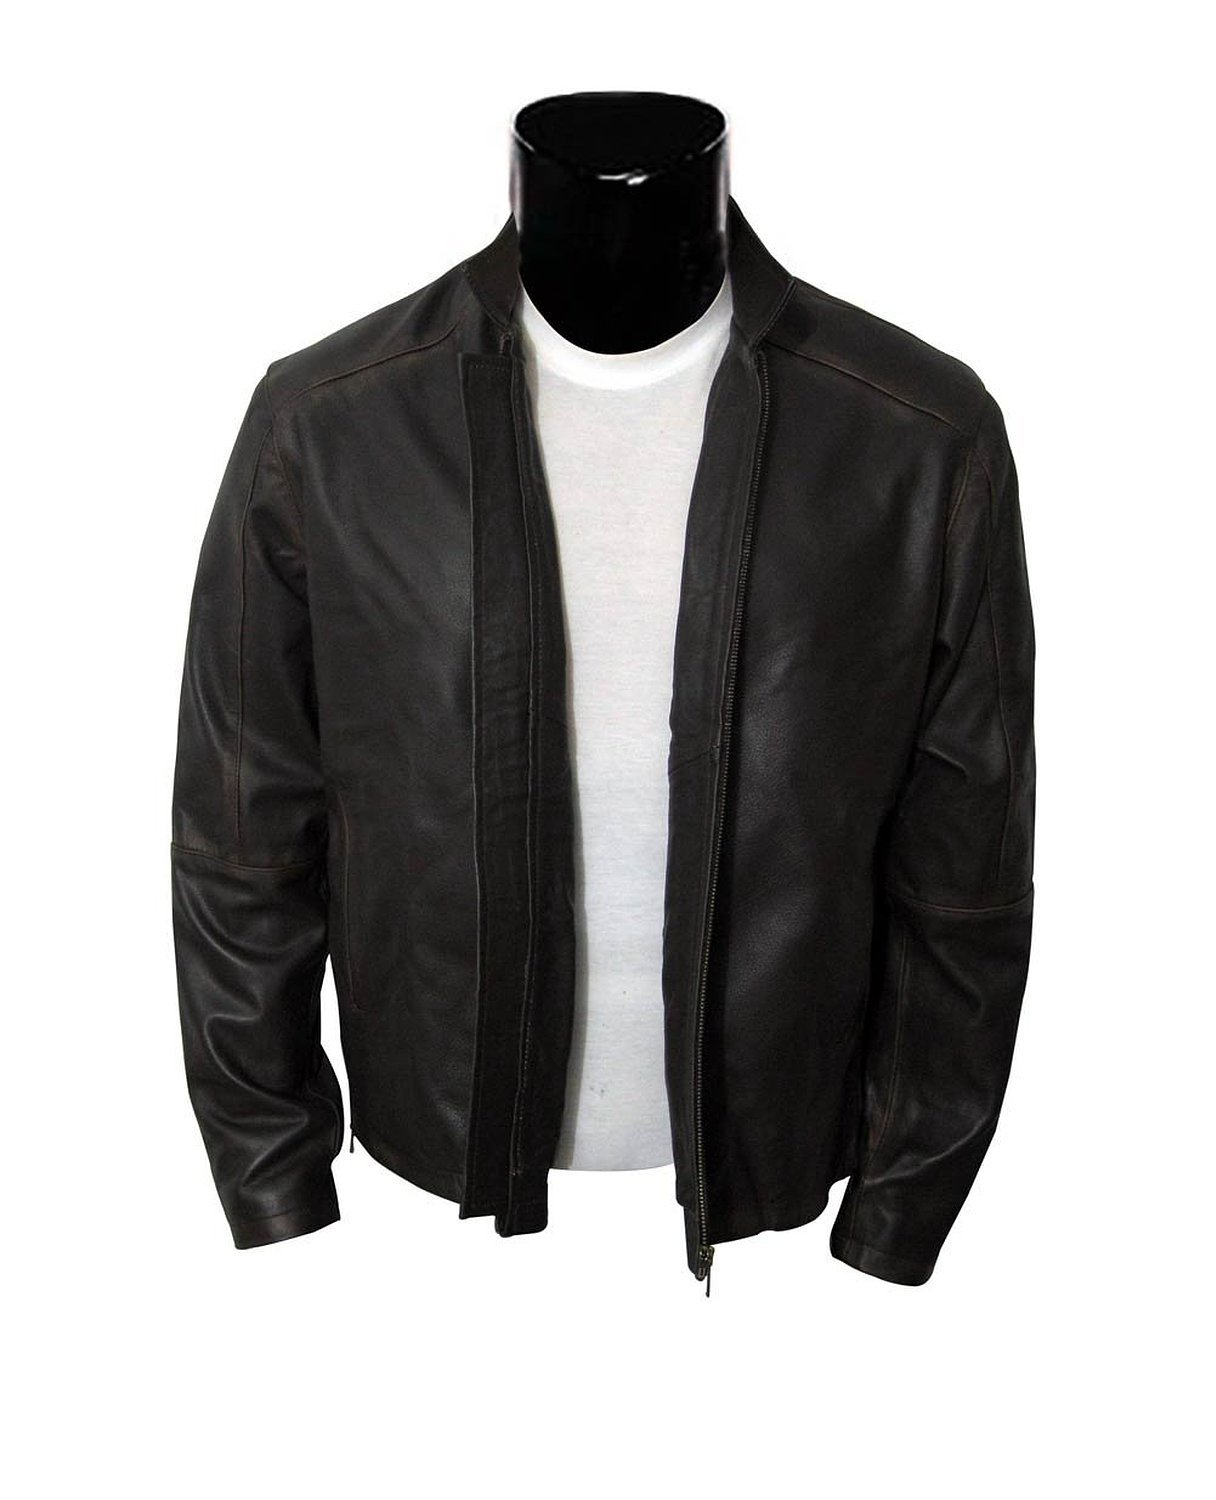 Brown Jack Reacher Movie Jacket - Real Leather (XXXL) by BlingSoul